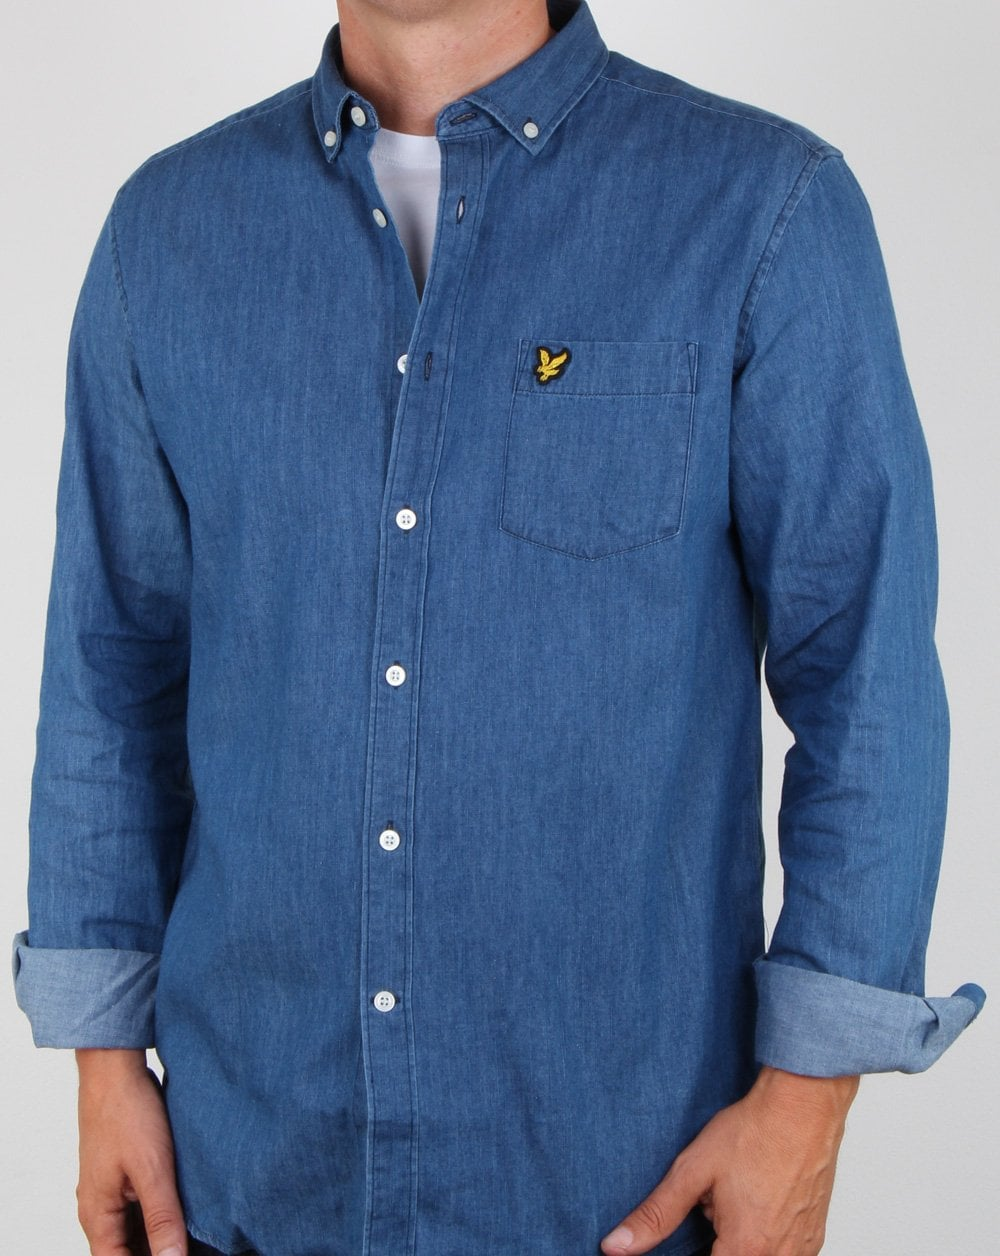 e078f7b7b Lyle and Scott Lyle And Scott Denim Shirt Light Indigo Blue